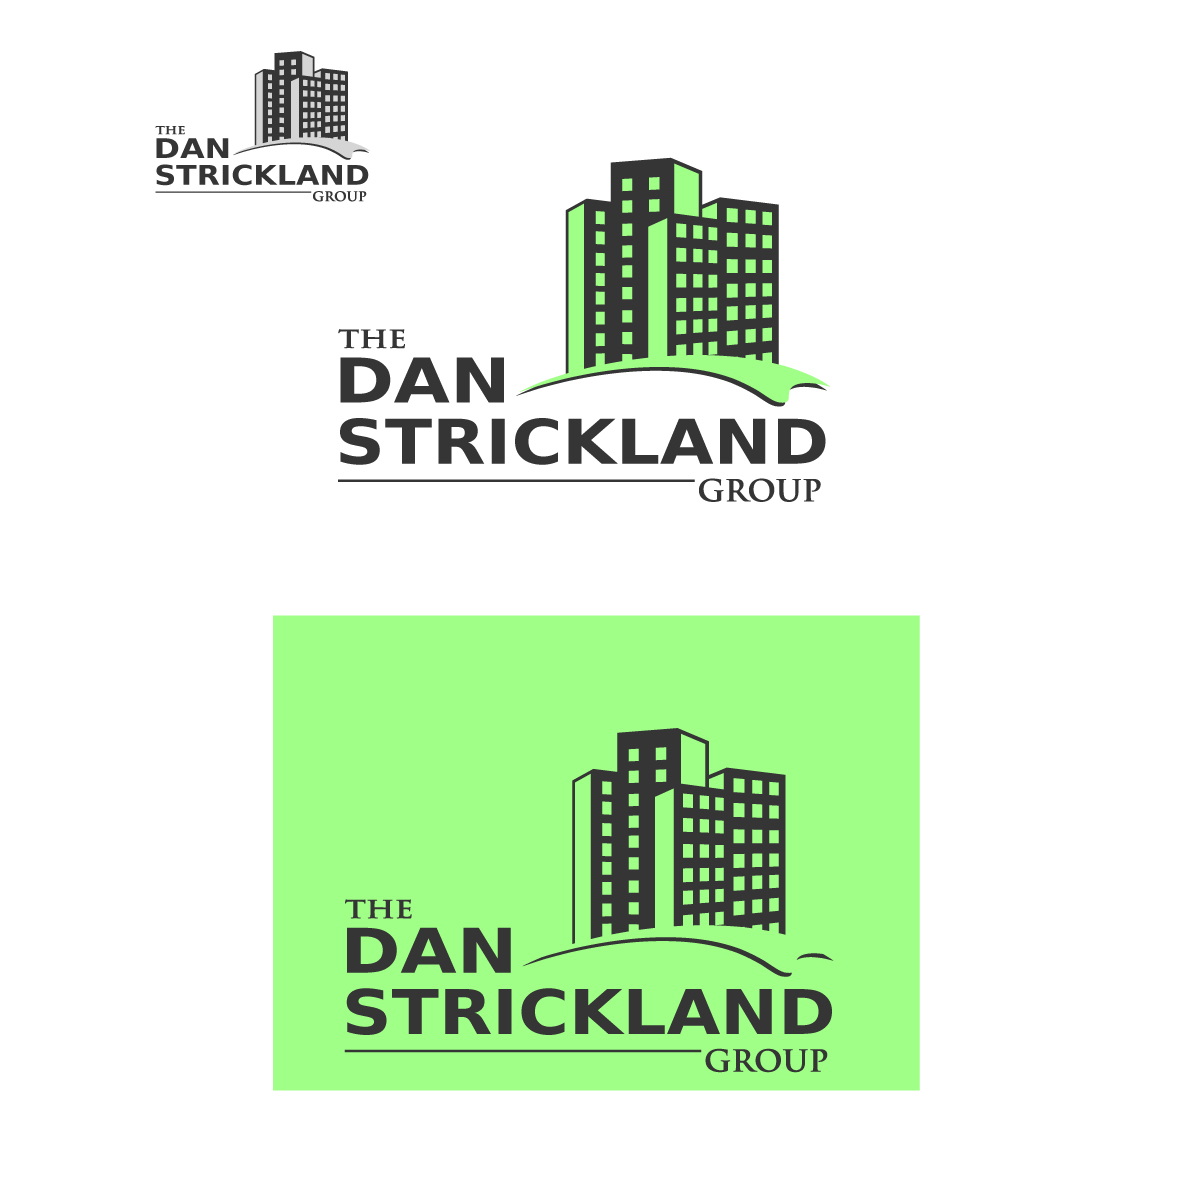 Logo Design by danelav - Entry No. 125 in the Logo Design Contest Creative Logo Design for The Dan Strickland Group.